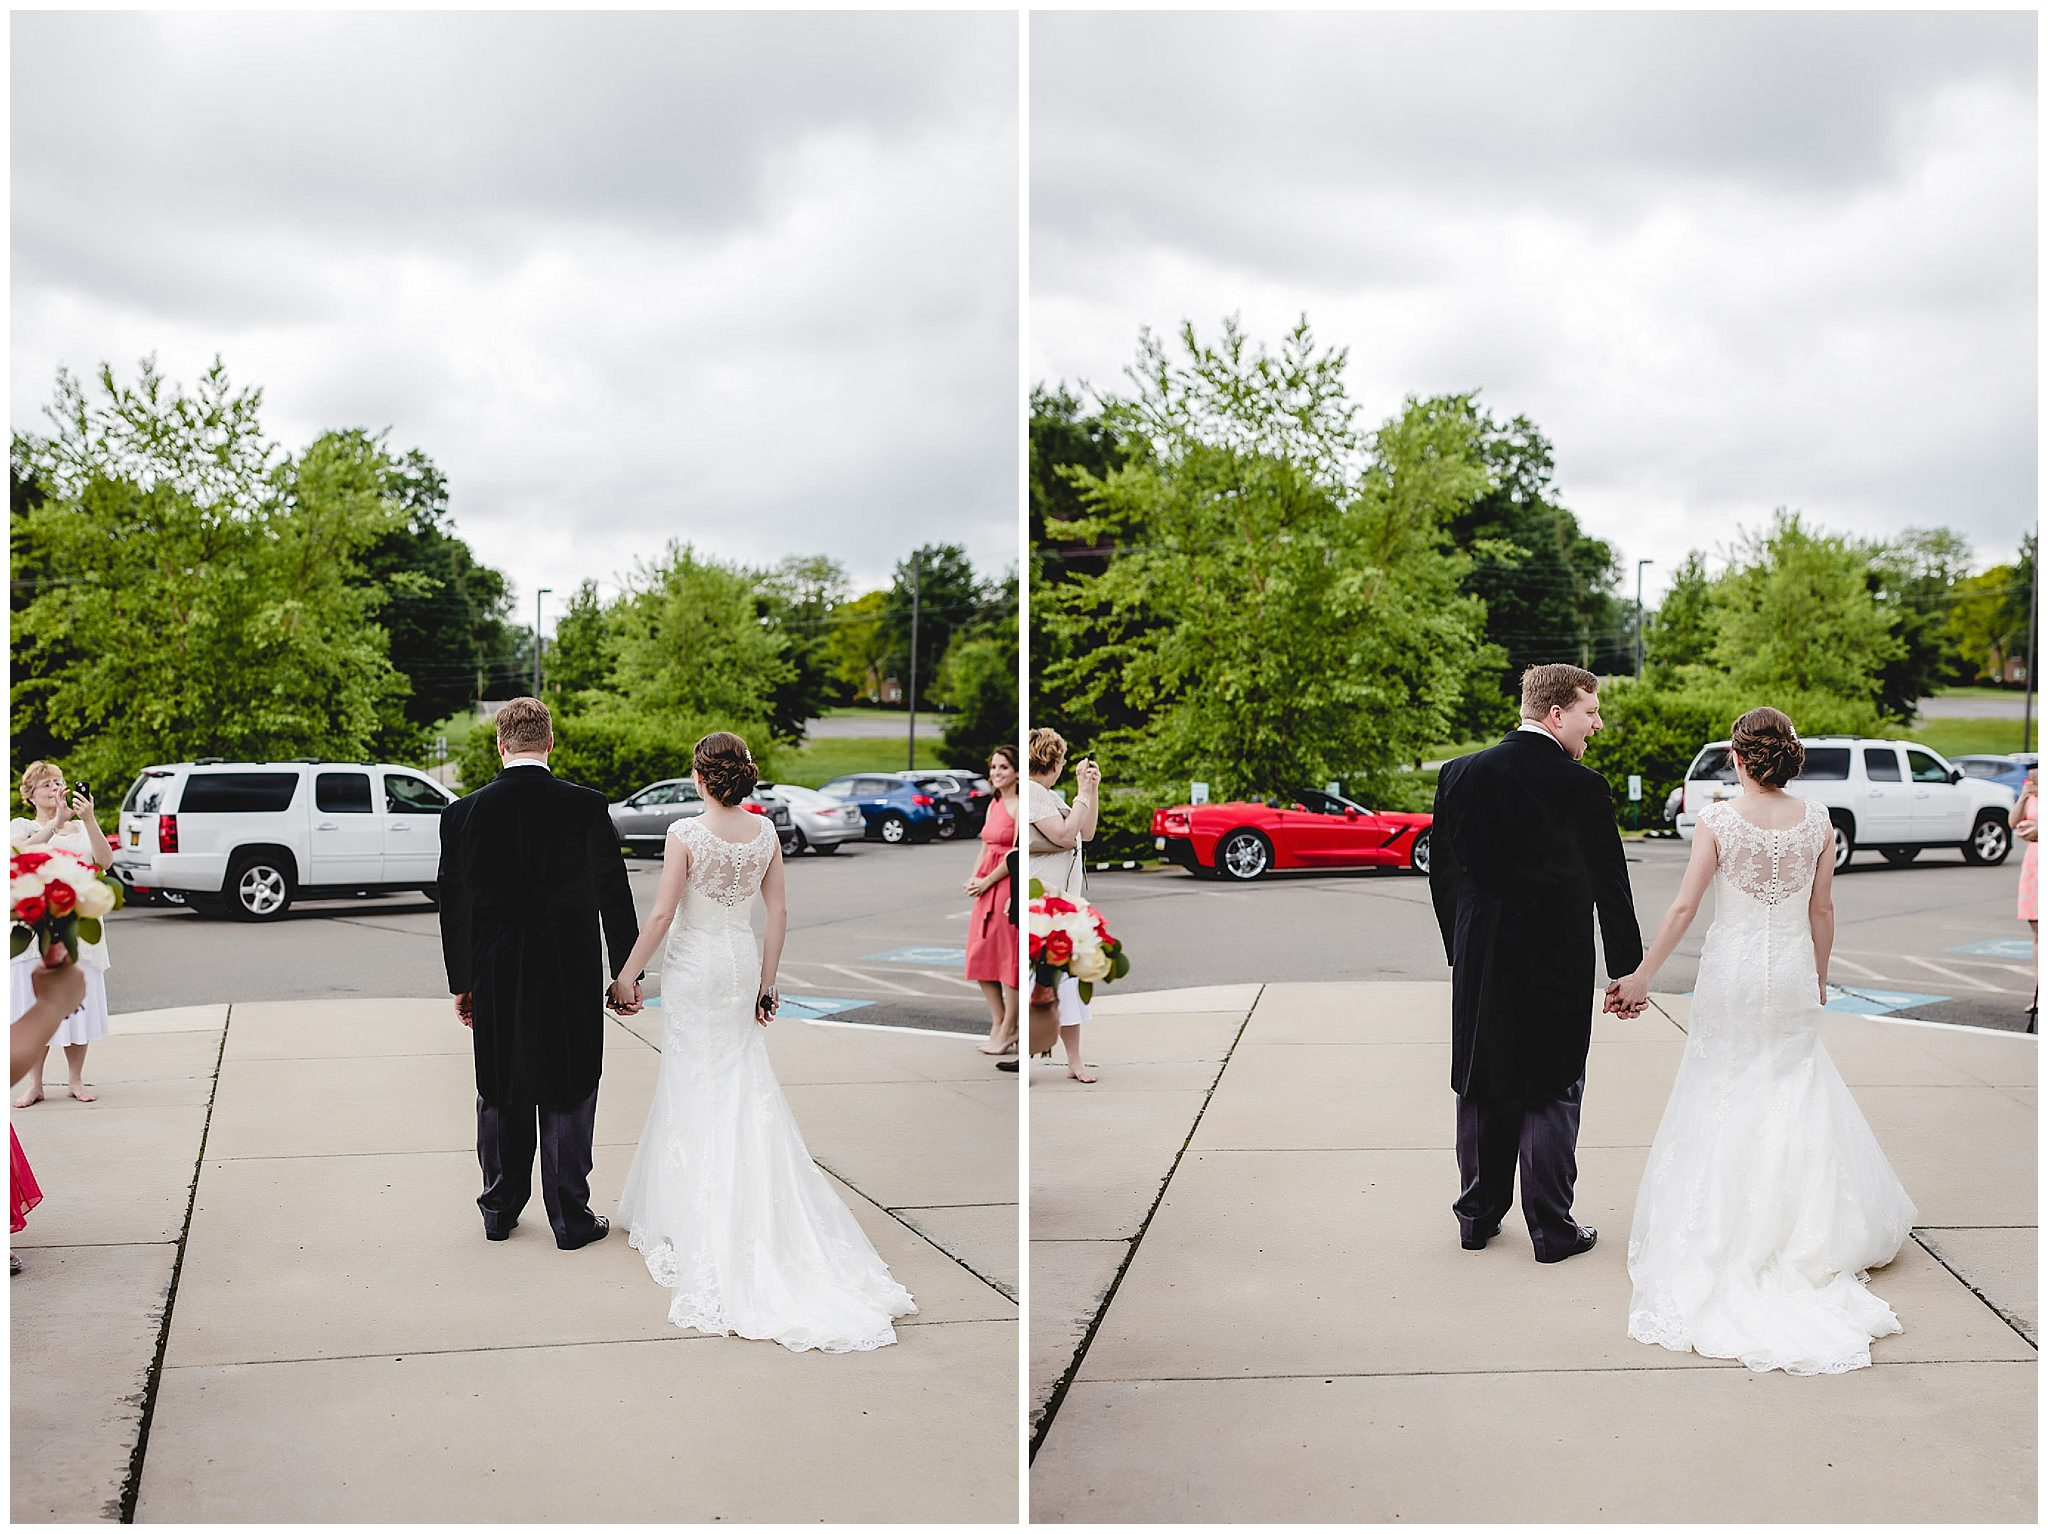 Bride surprises groom with red Corvette on their wedding day